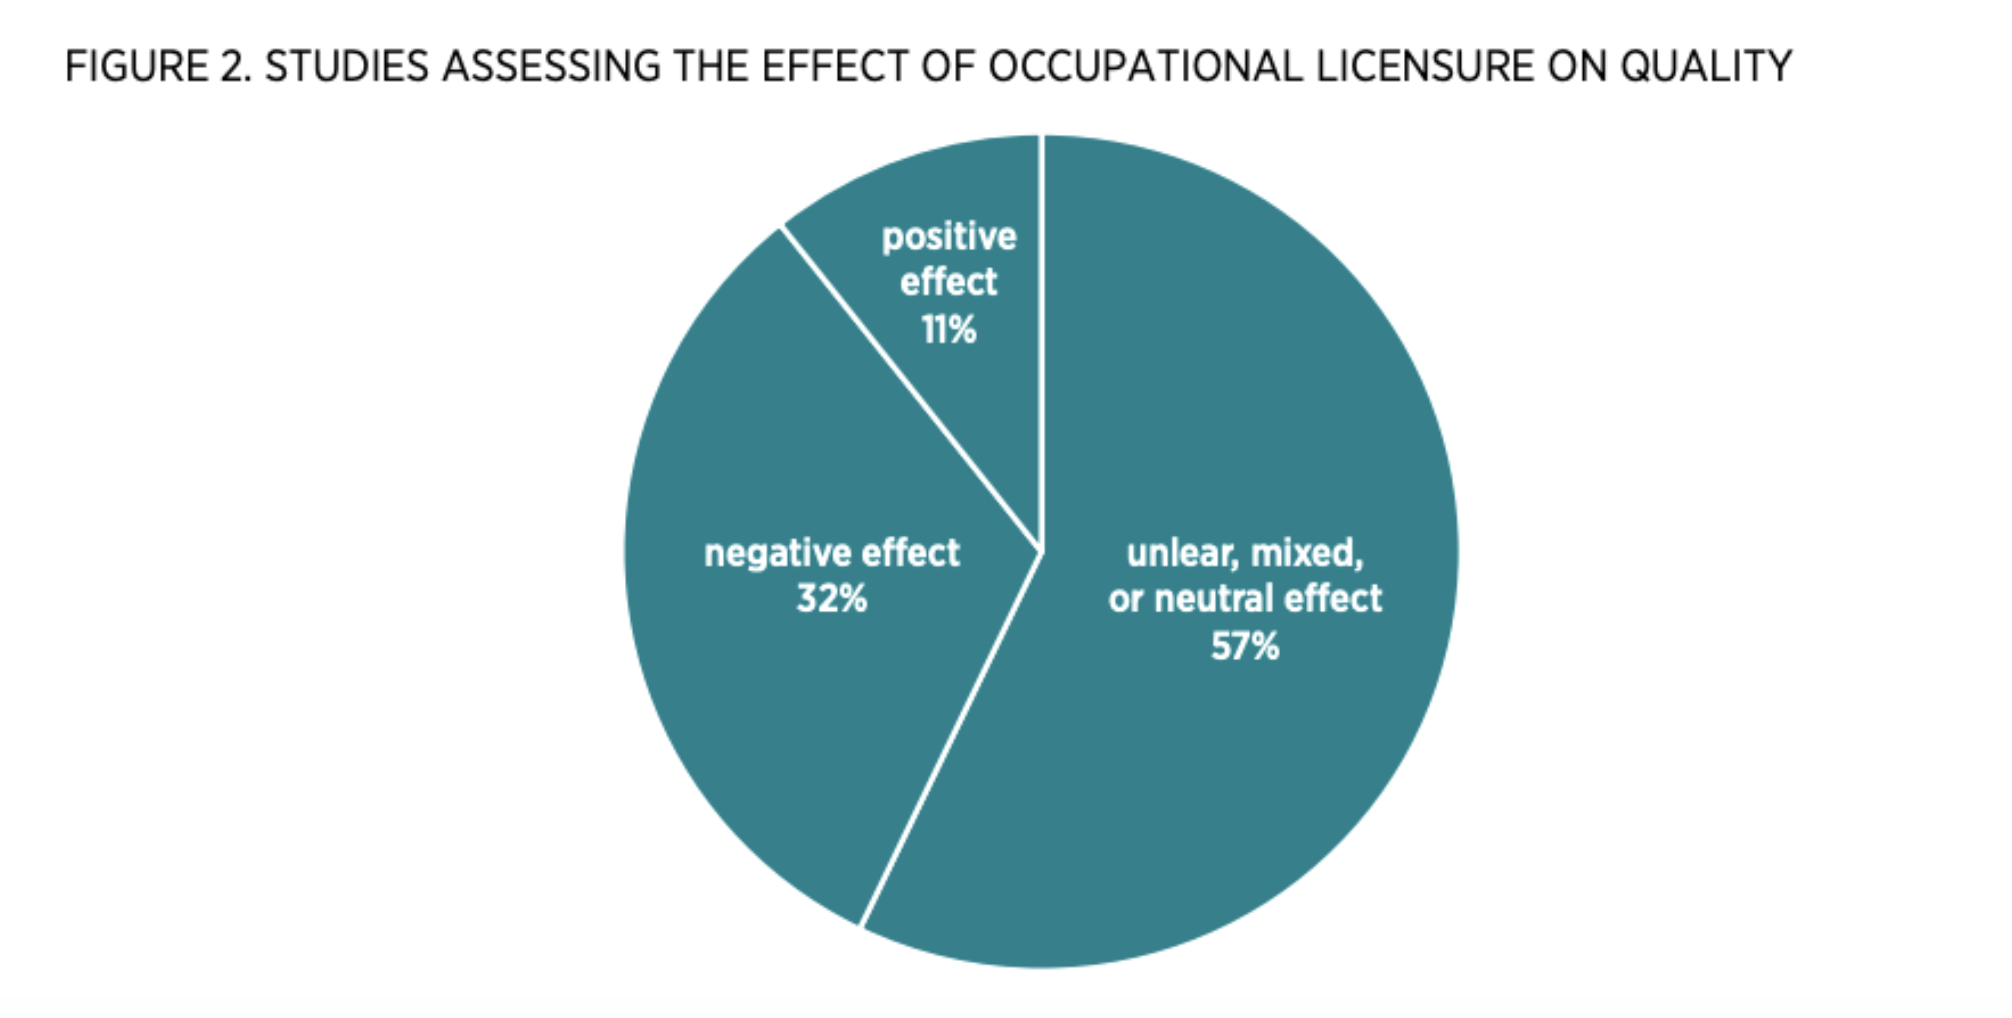 Figure 2. Studies Assessing the Effect of Occupational Licensure on Quality